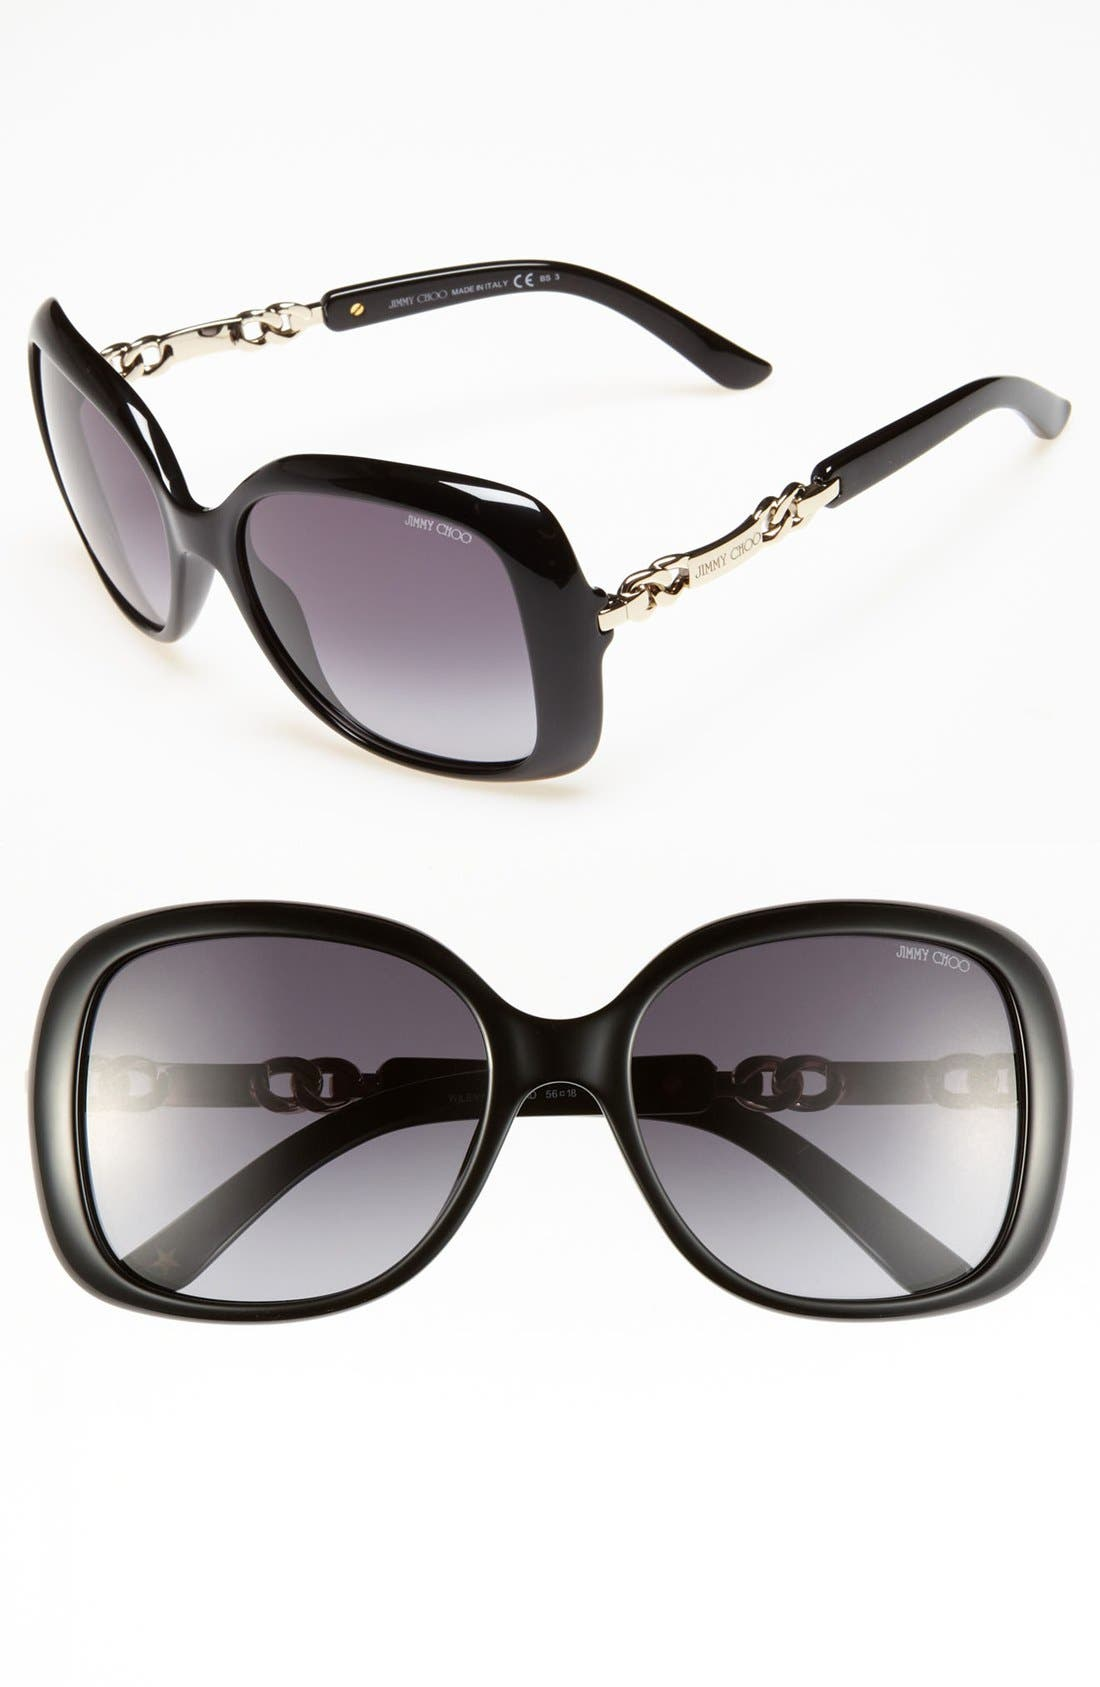 Alternate Image 1 Selected - Jimmy Choo 'Wiley' 56mm Sunglasses